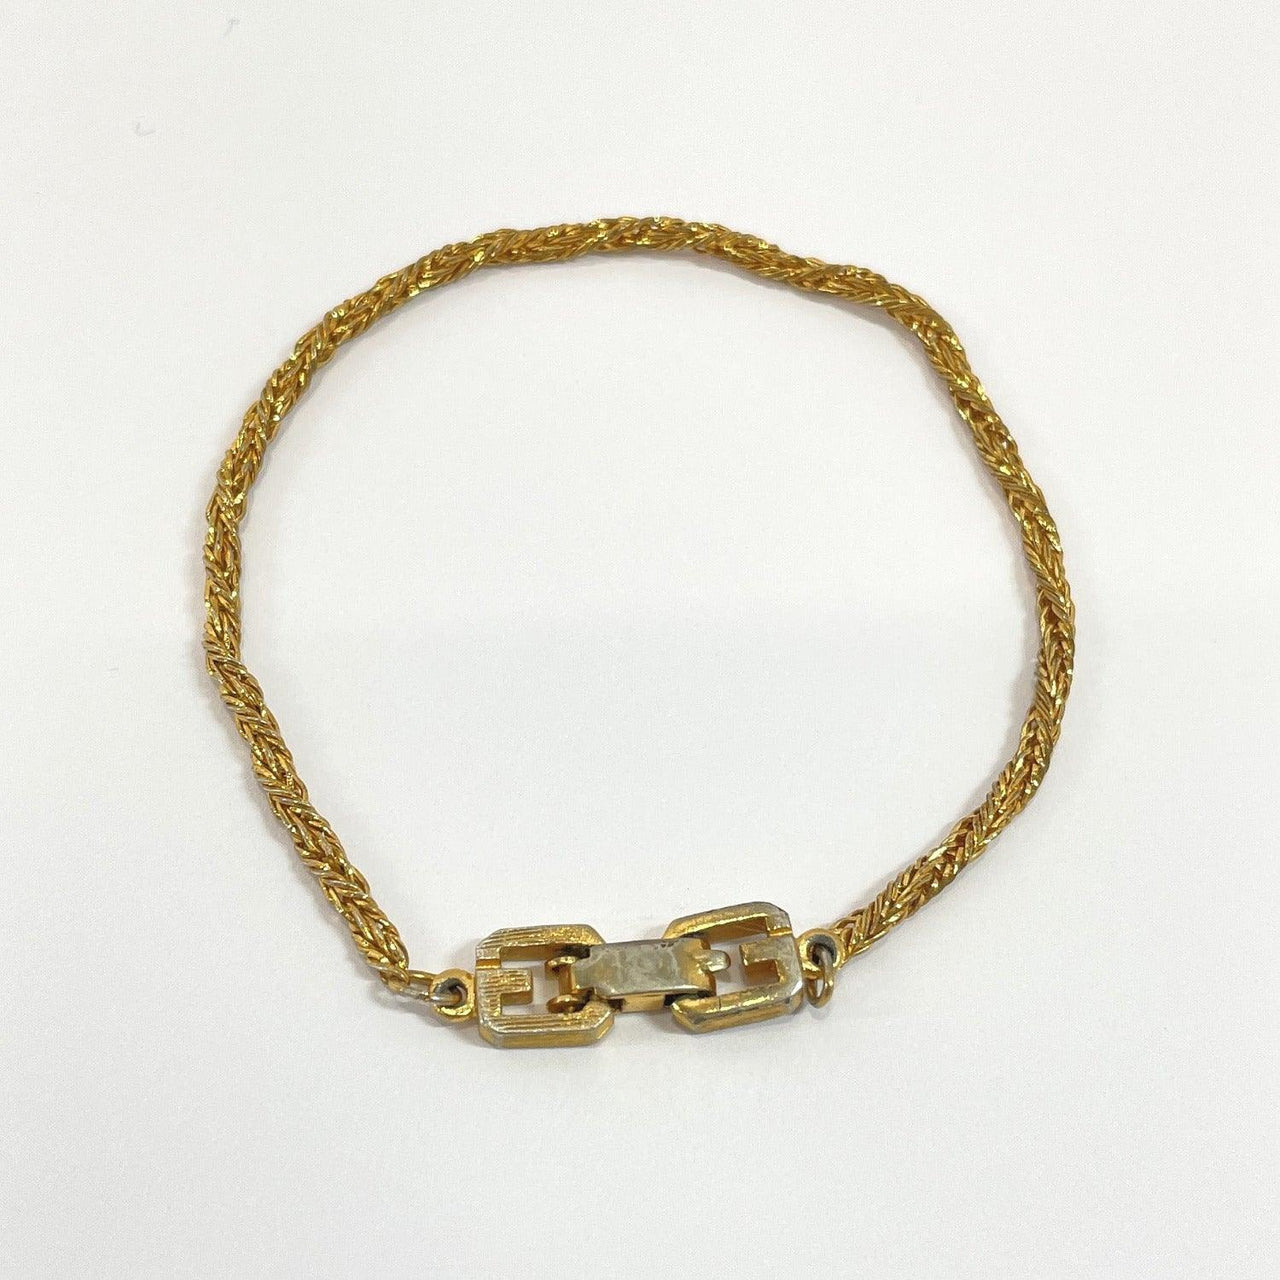 Givenchy bracelet metal gold Women Used